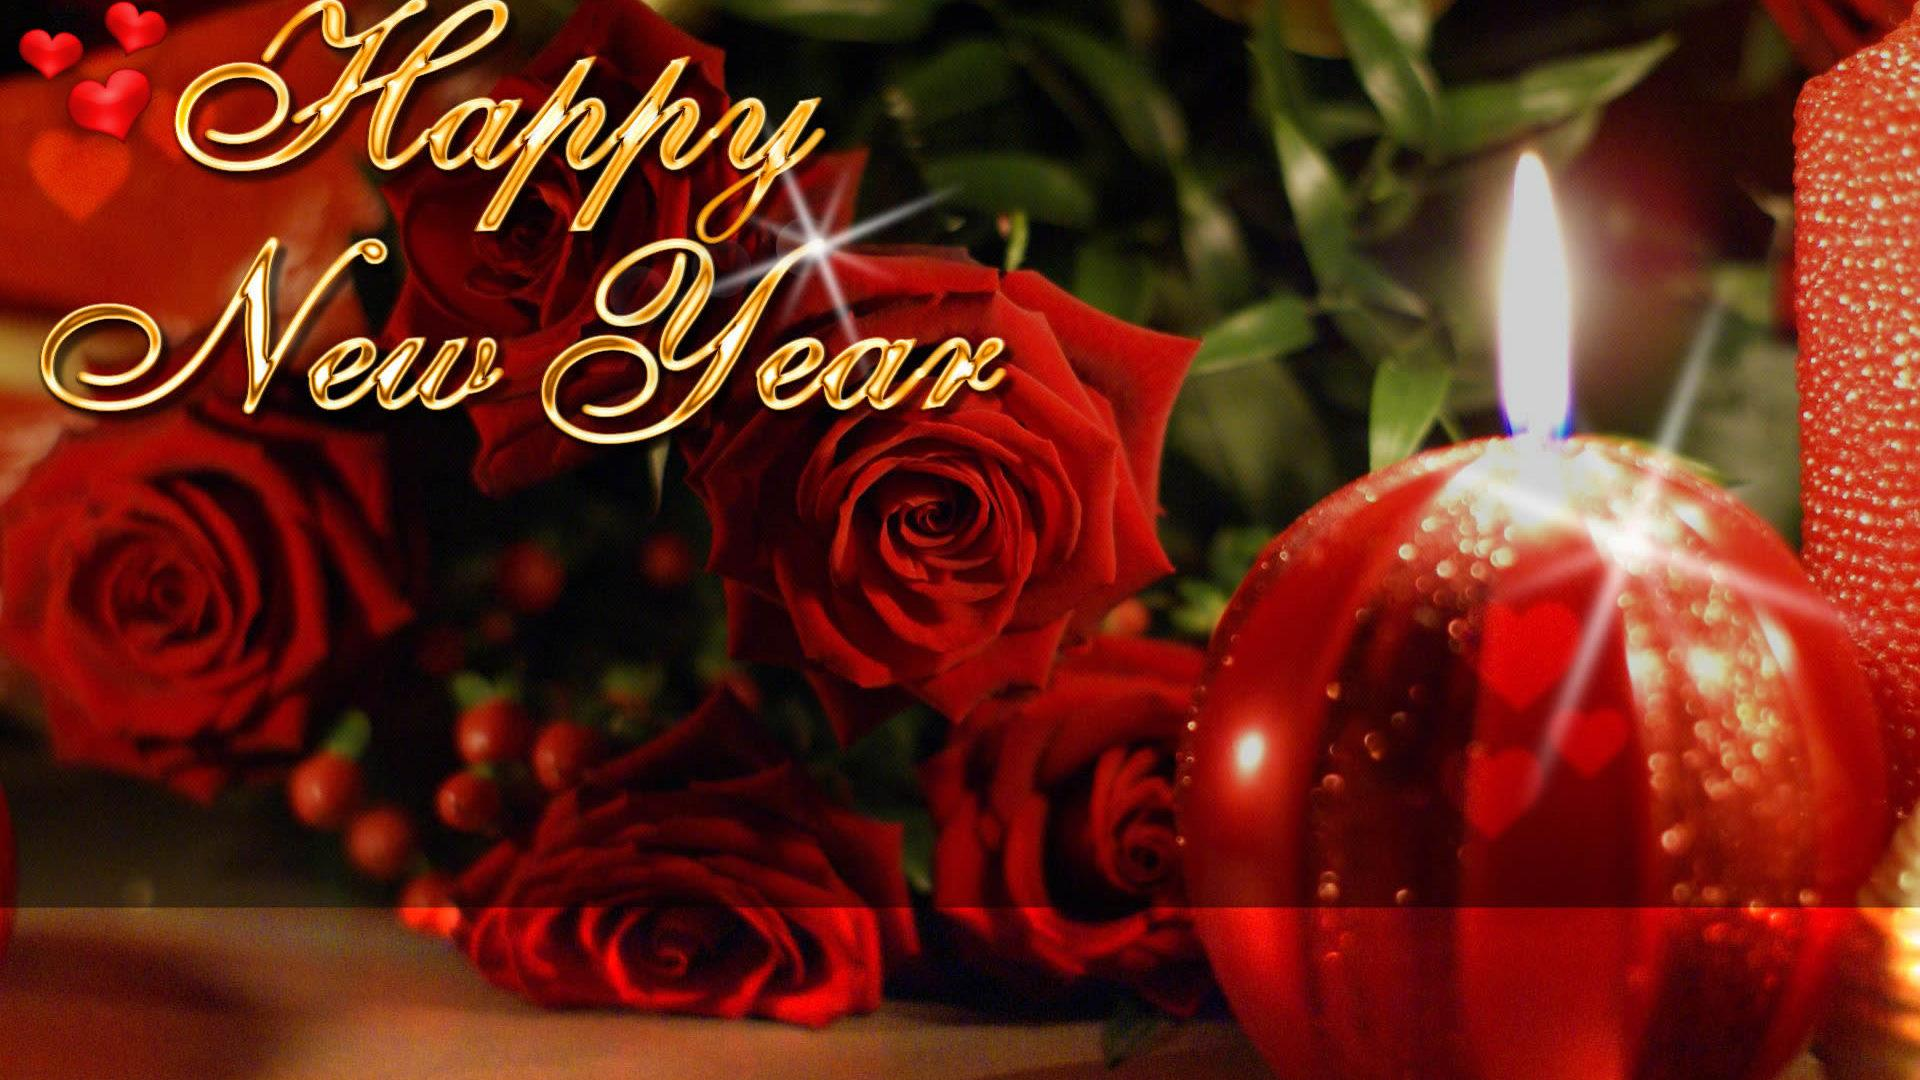 Happy New Year Love Wallpapers Wallpaper Cave